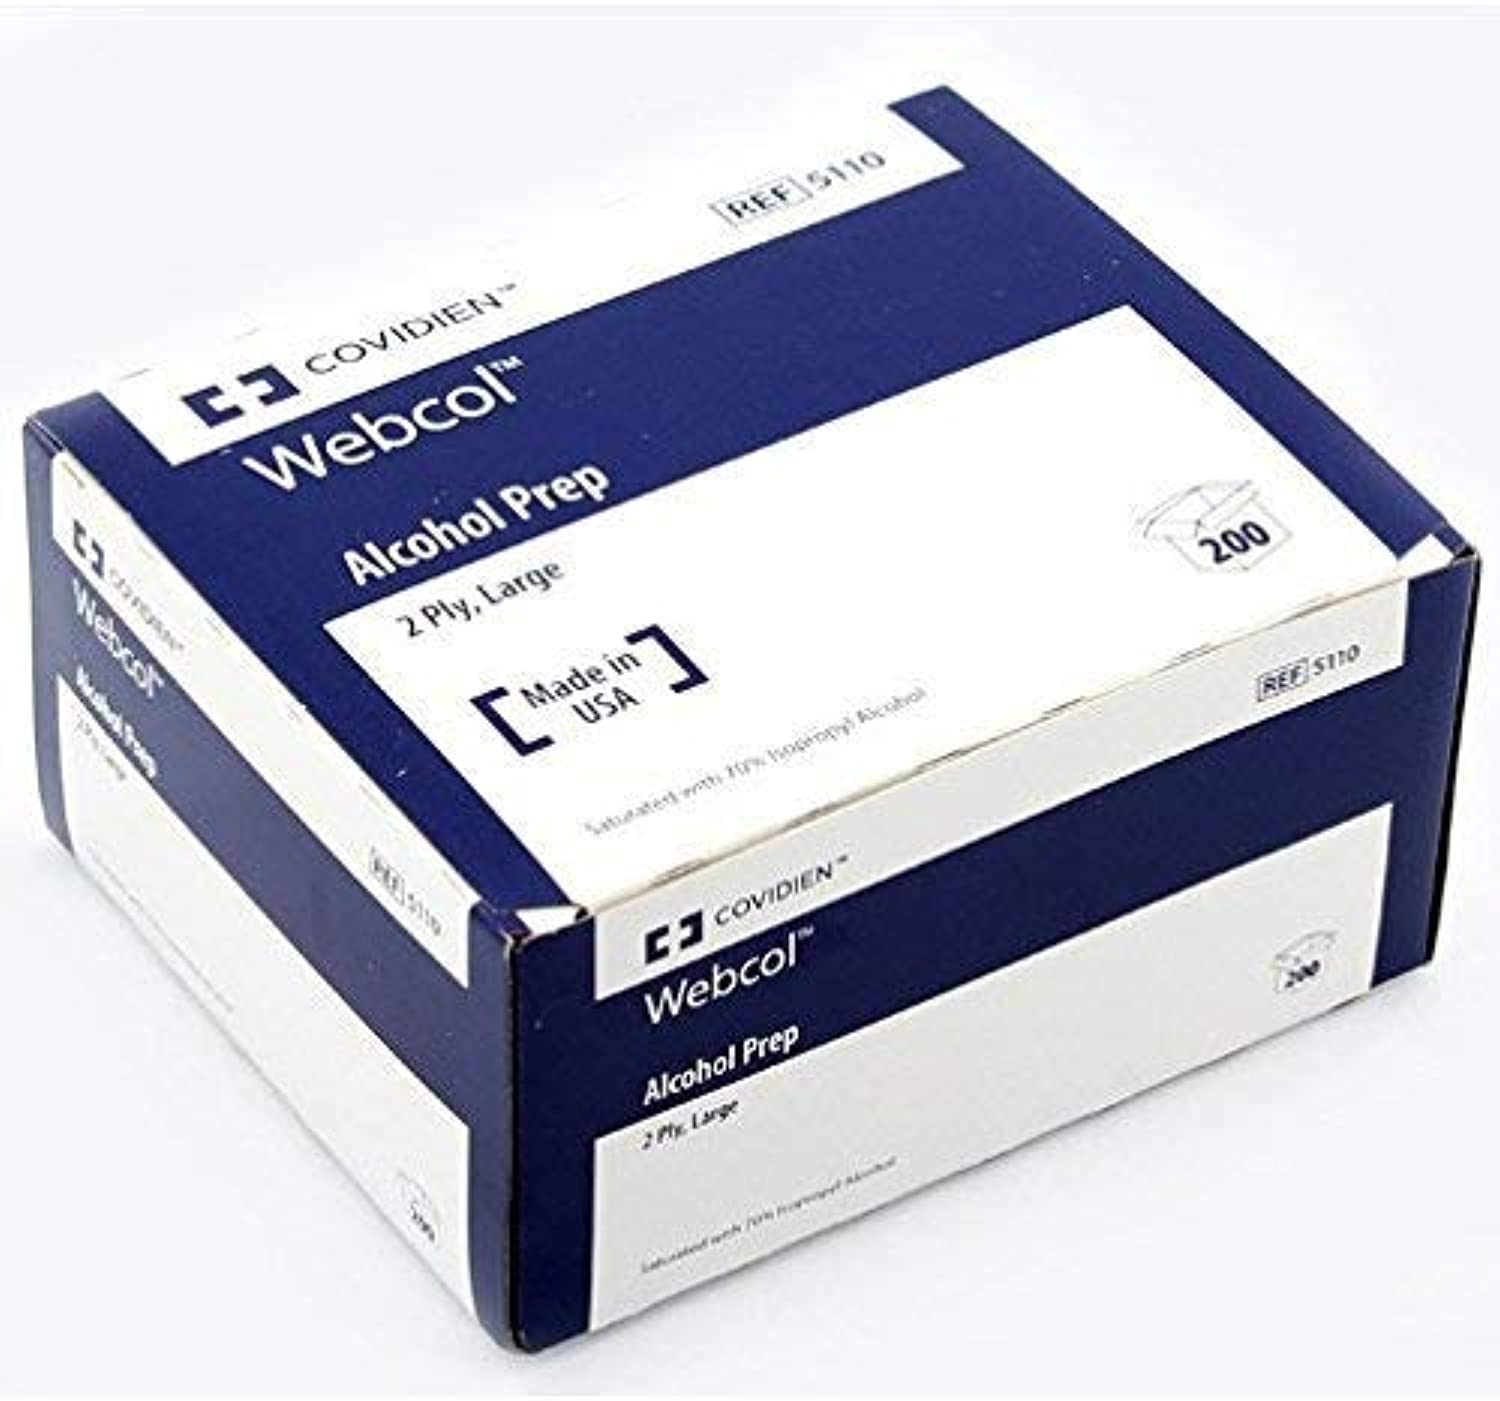 Kendall 5110 Webcol Premium Alcohol Prep, Sterile, 2 Ply, Large (20 Boxes of 200)